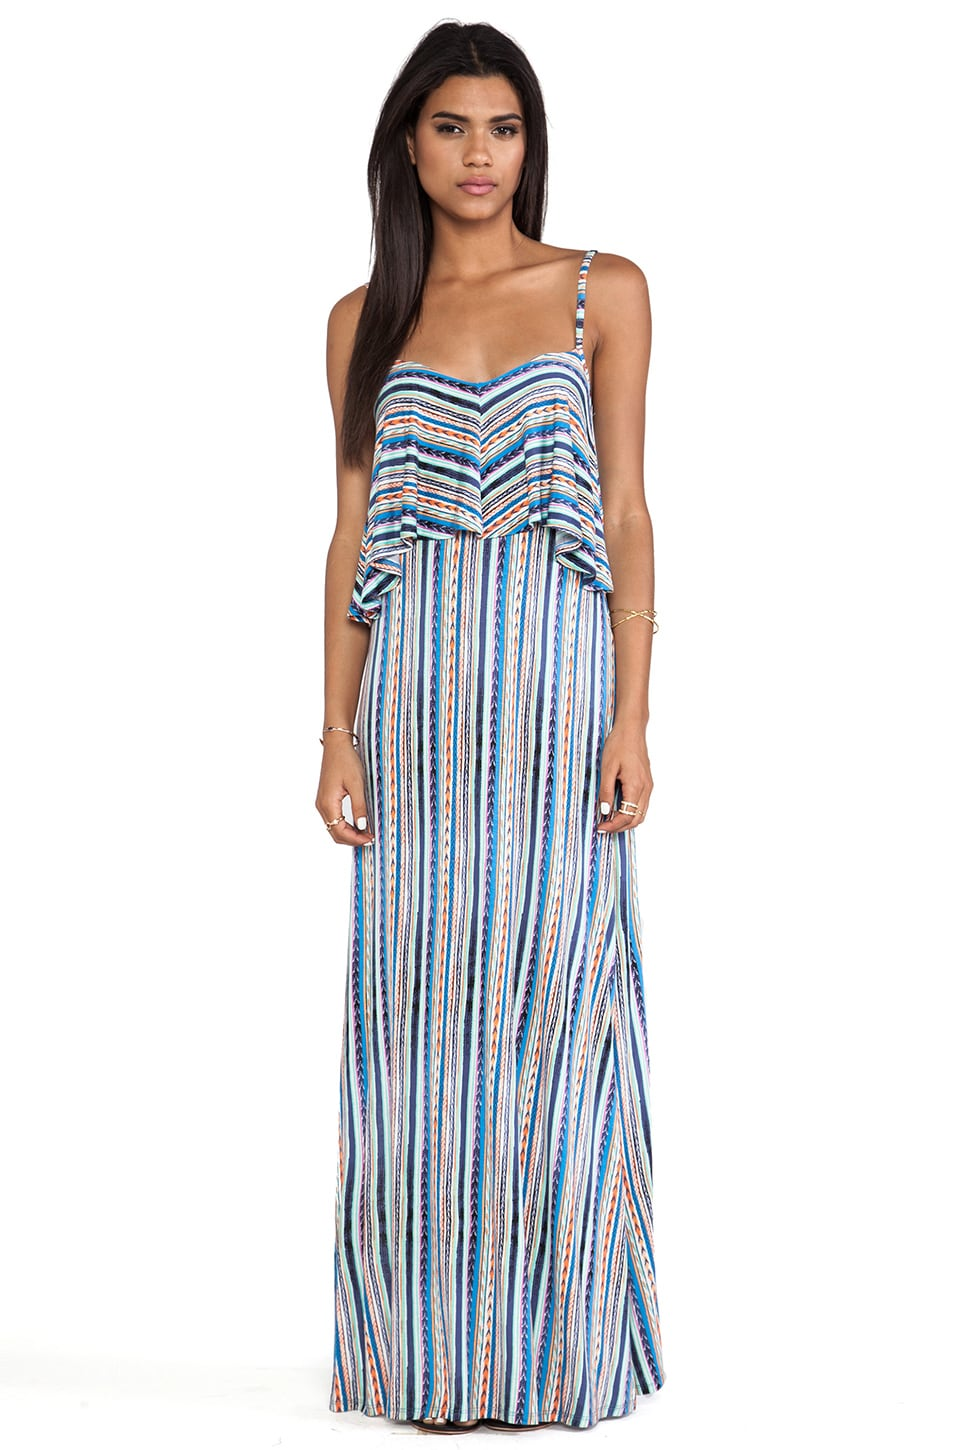 Ella Moss Bondi Maxi Dress in Azure